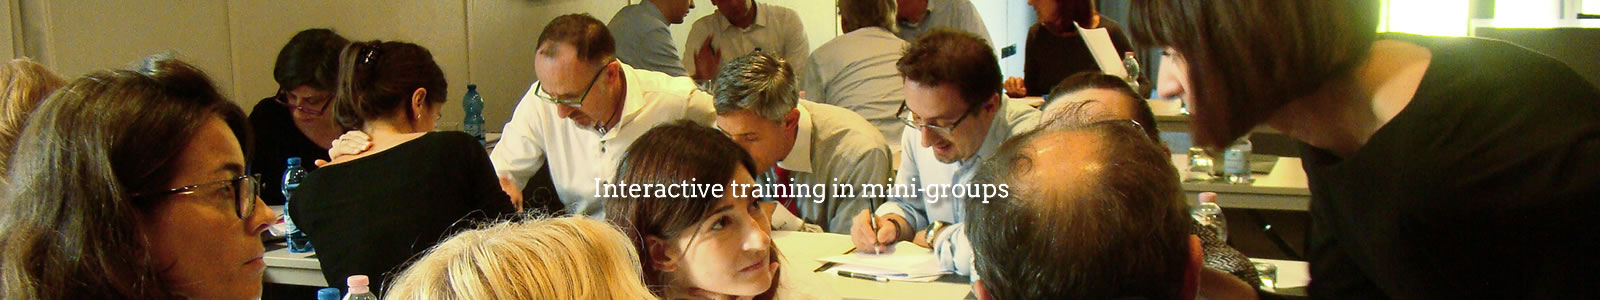 Interactive training in mini-groups